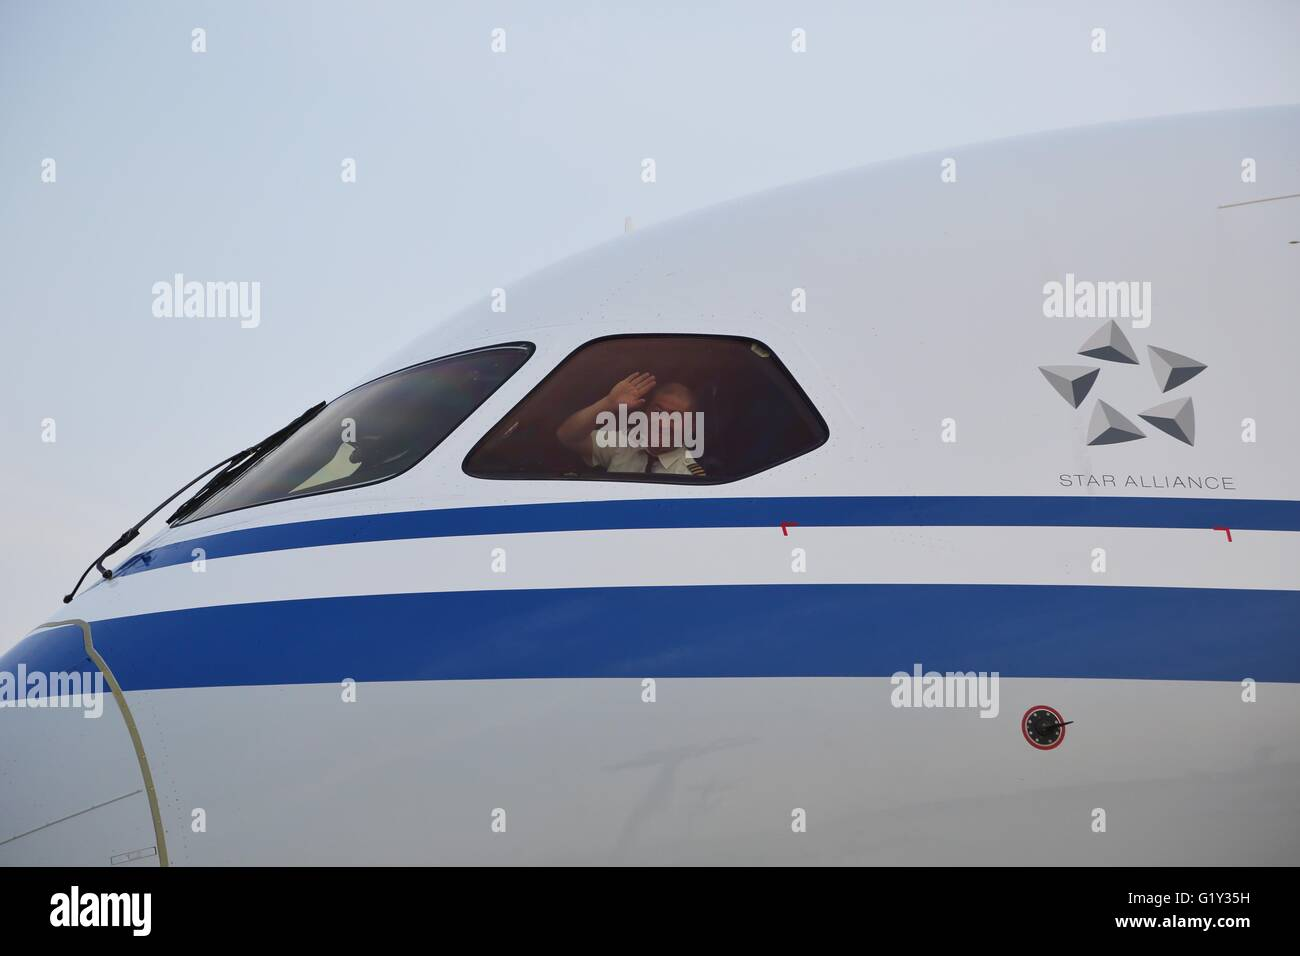 Chinese 787 dreamliner stock photos chinese 787 dreamliner stock beijing china 20th may 2016 a pilot waves hands from a boeing publicscrutiny Images